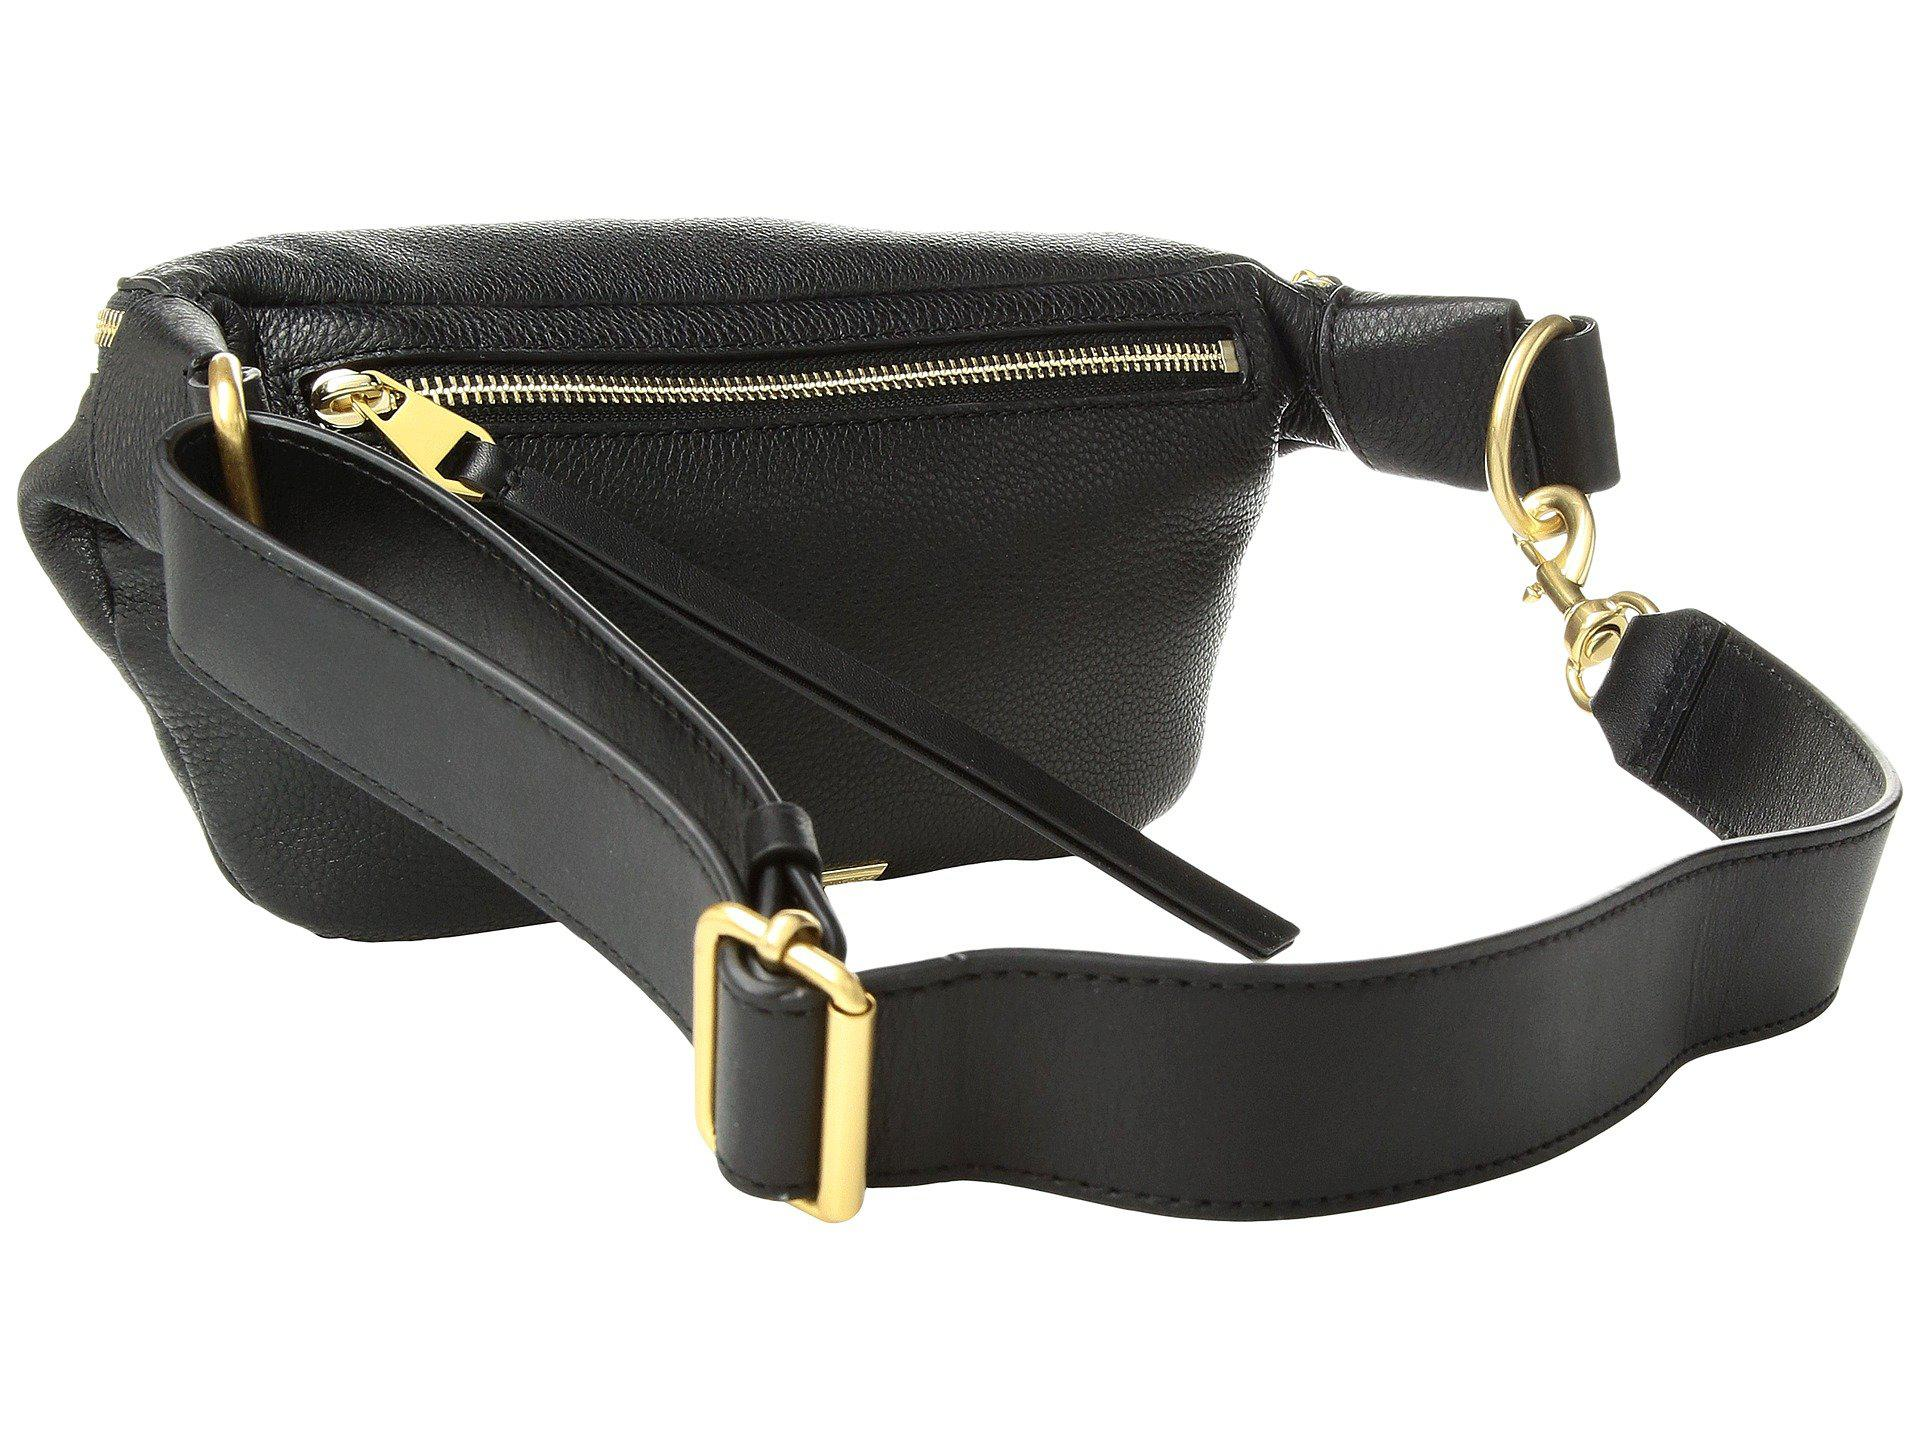 cbdff28da6c5 Rebecca Minkoff - Black Bree Belt Bag (mink) Handbags - Lyst. View  fullscreen